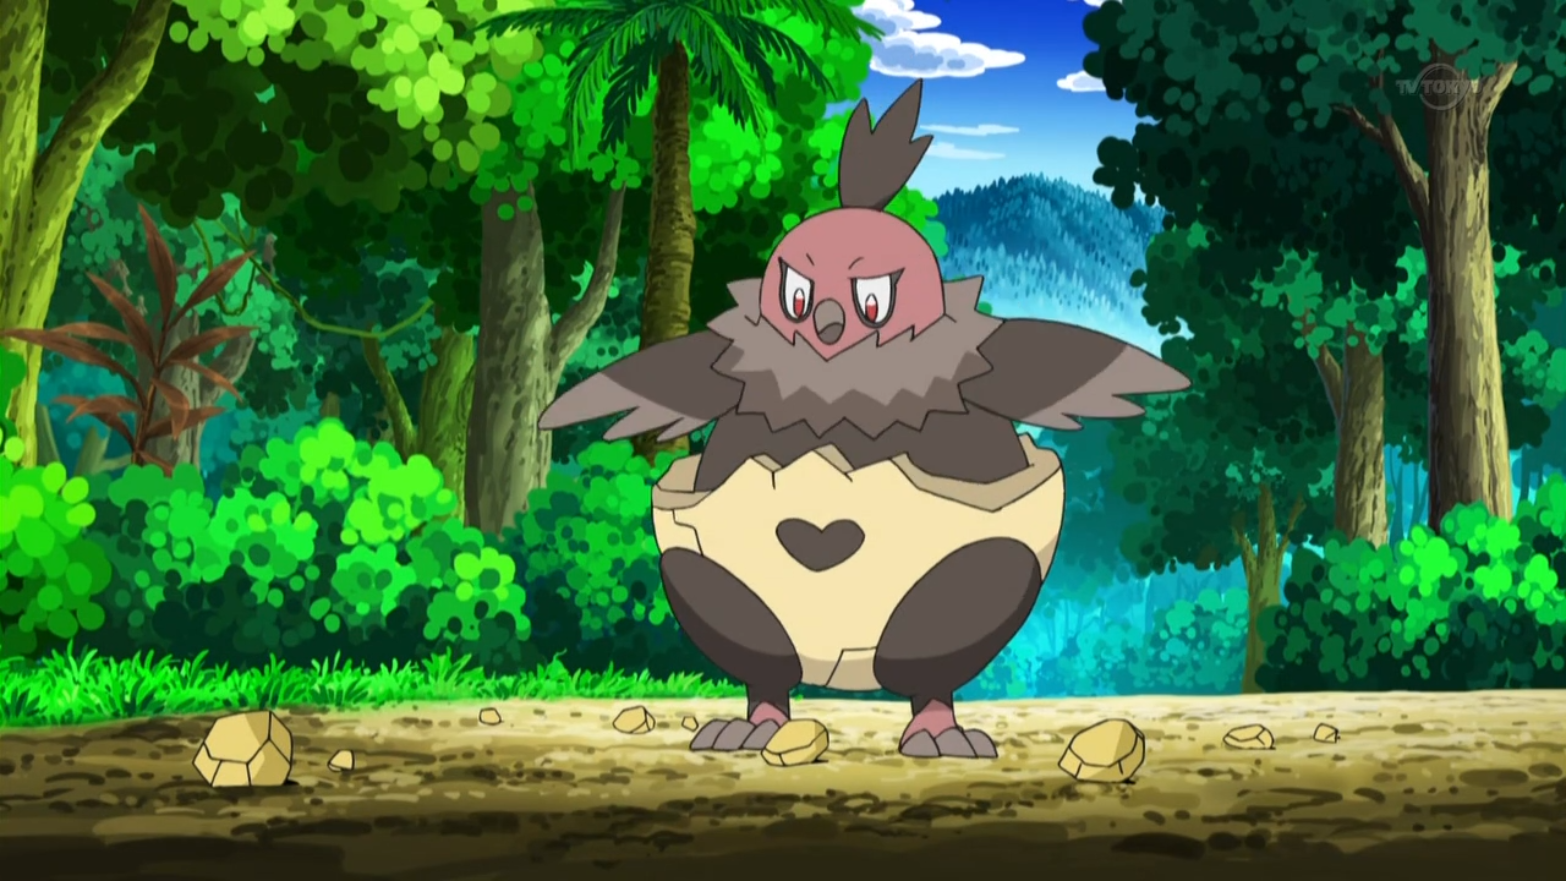 Vullaby, along with Rufflet, were the Pokémon Layla takes care about. However, due to their differences and disagreements, Vullaby and Rufflet often fought each other. Vullaby was more harsh and tougher than Rufflet.